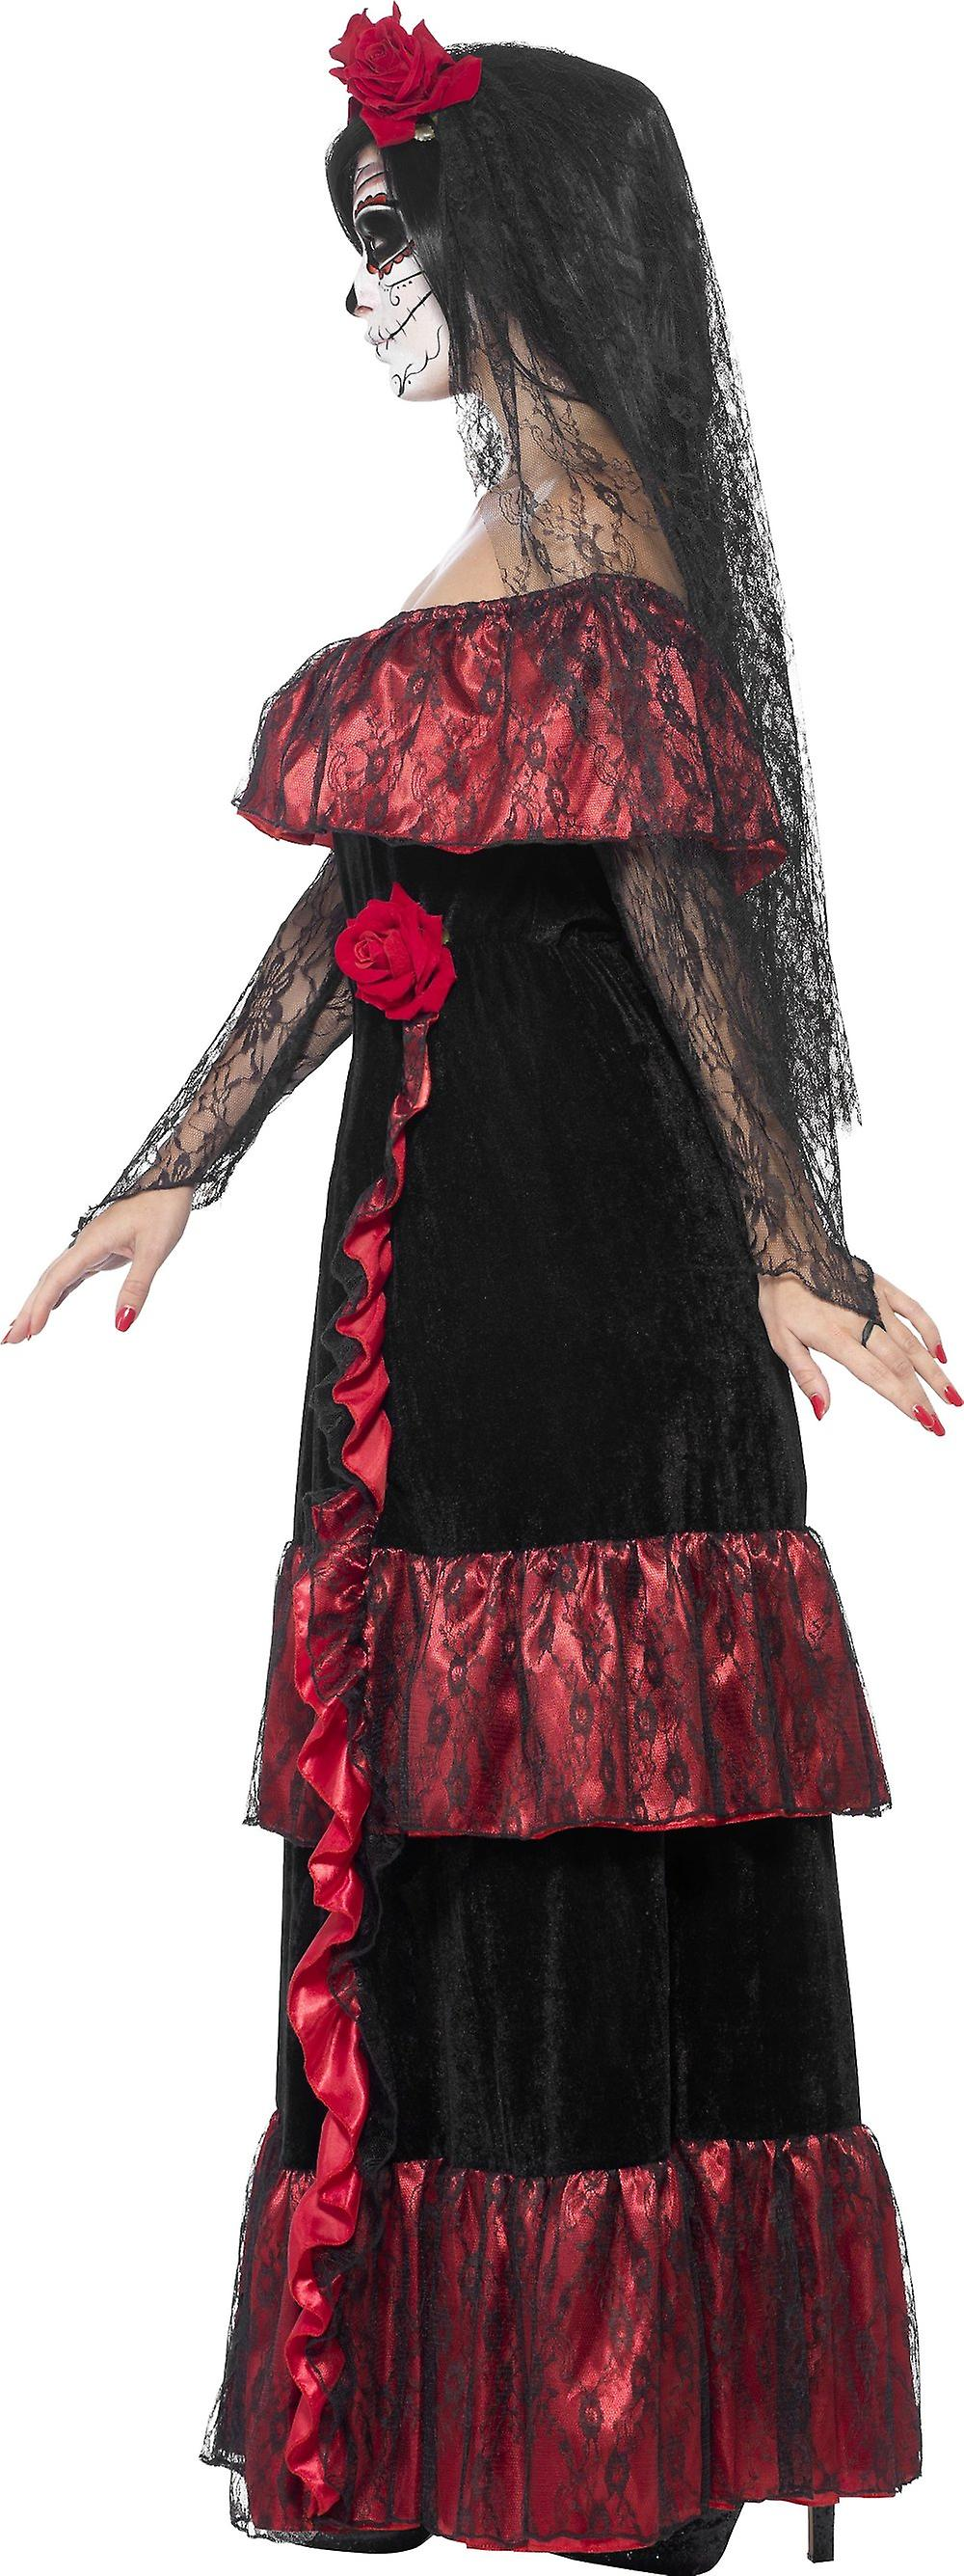 Smiffys Day Of The Dead Bride Halloween Fancy Dress Womens Costume Black Red